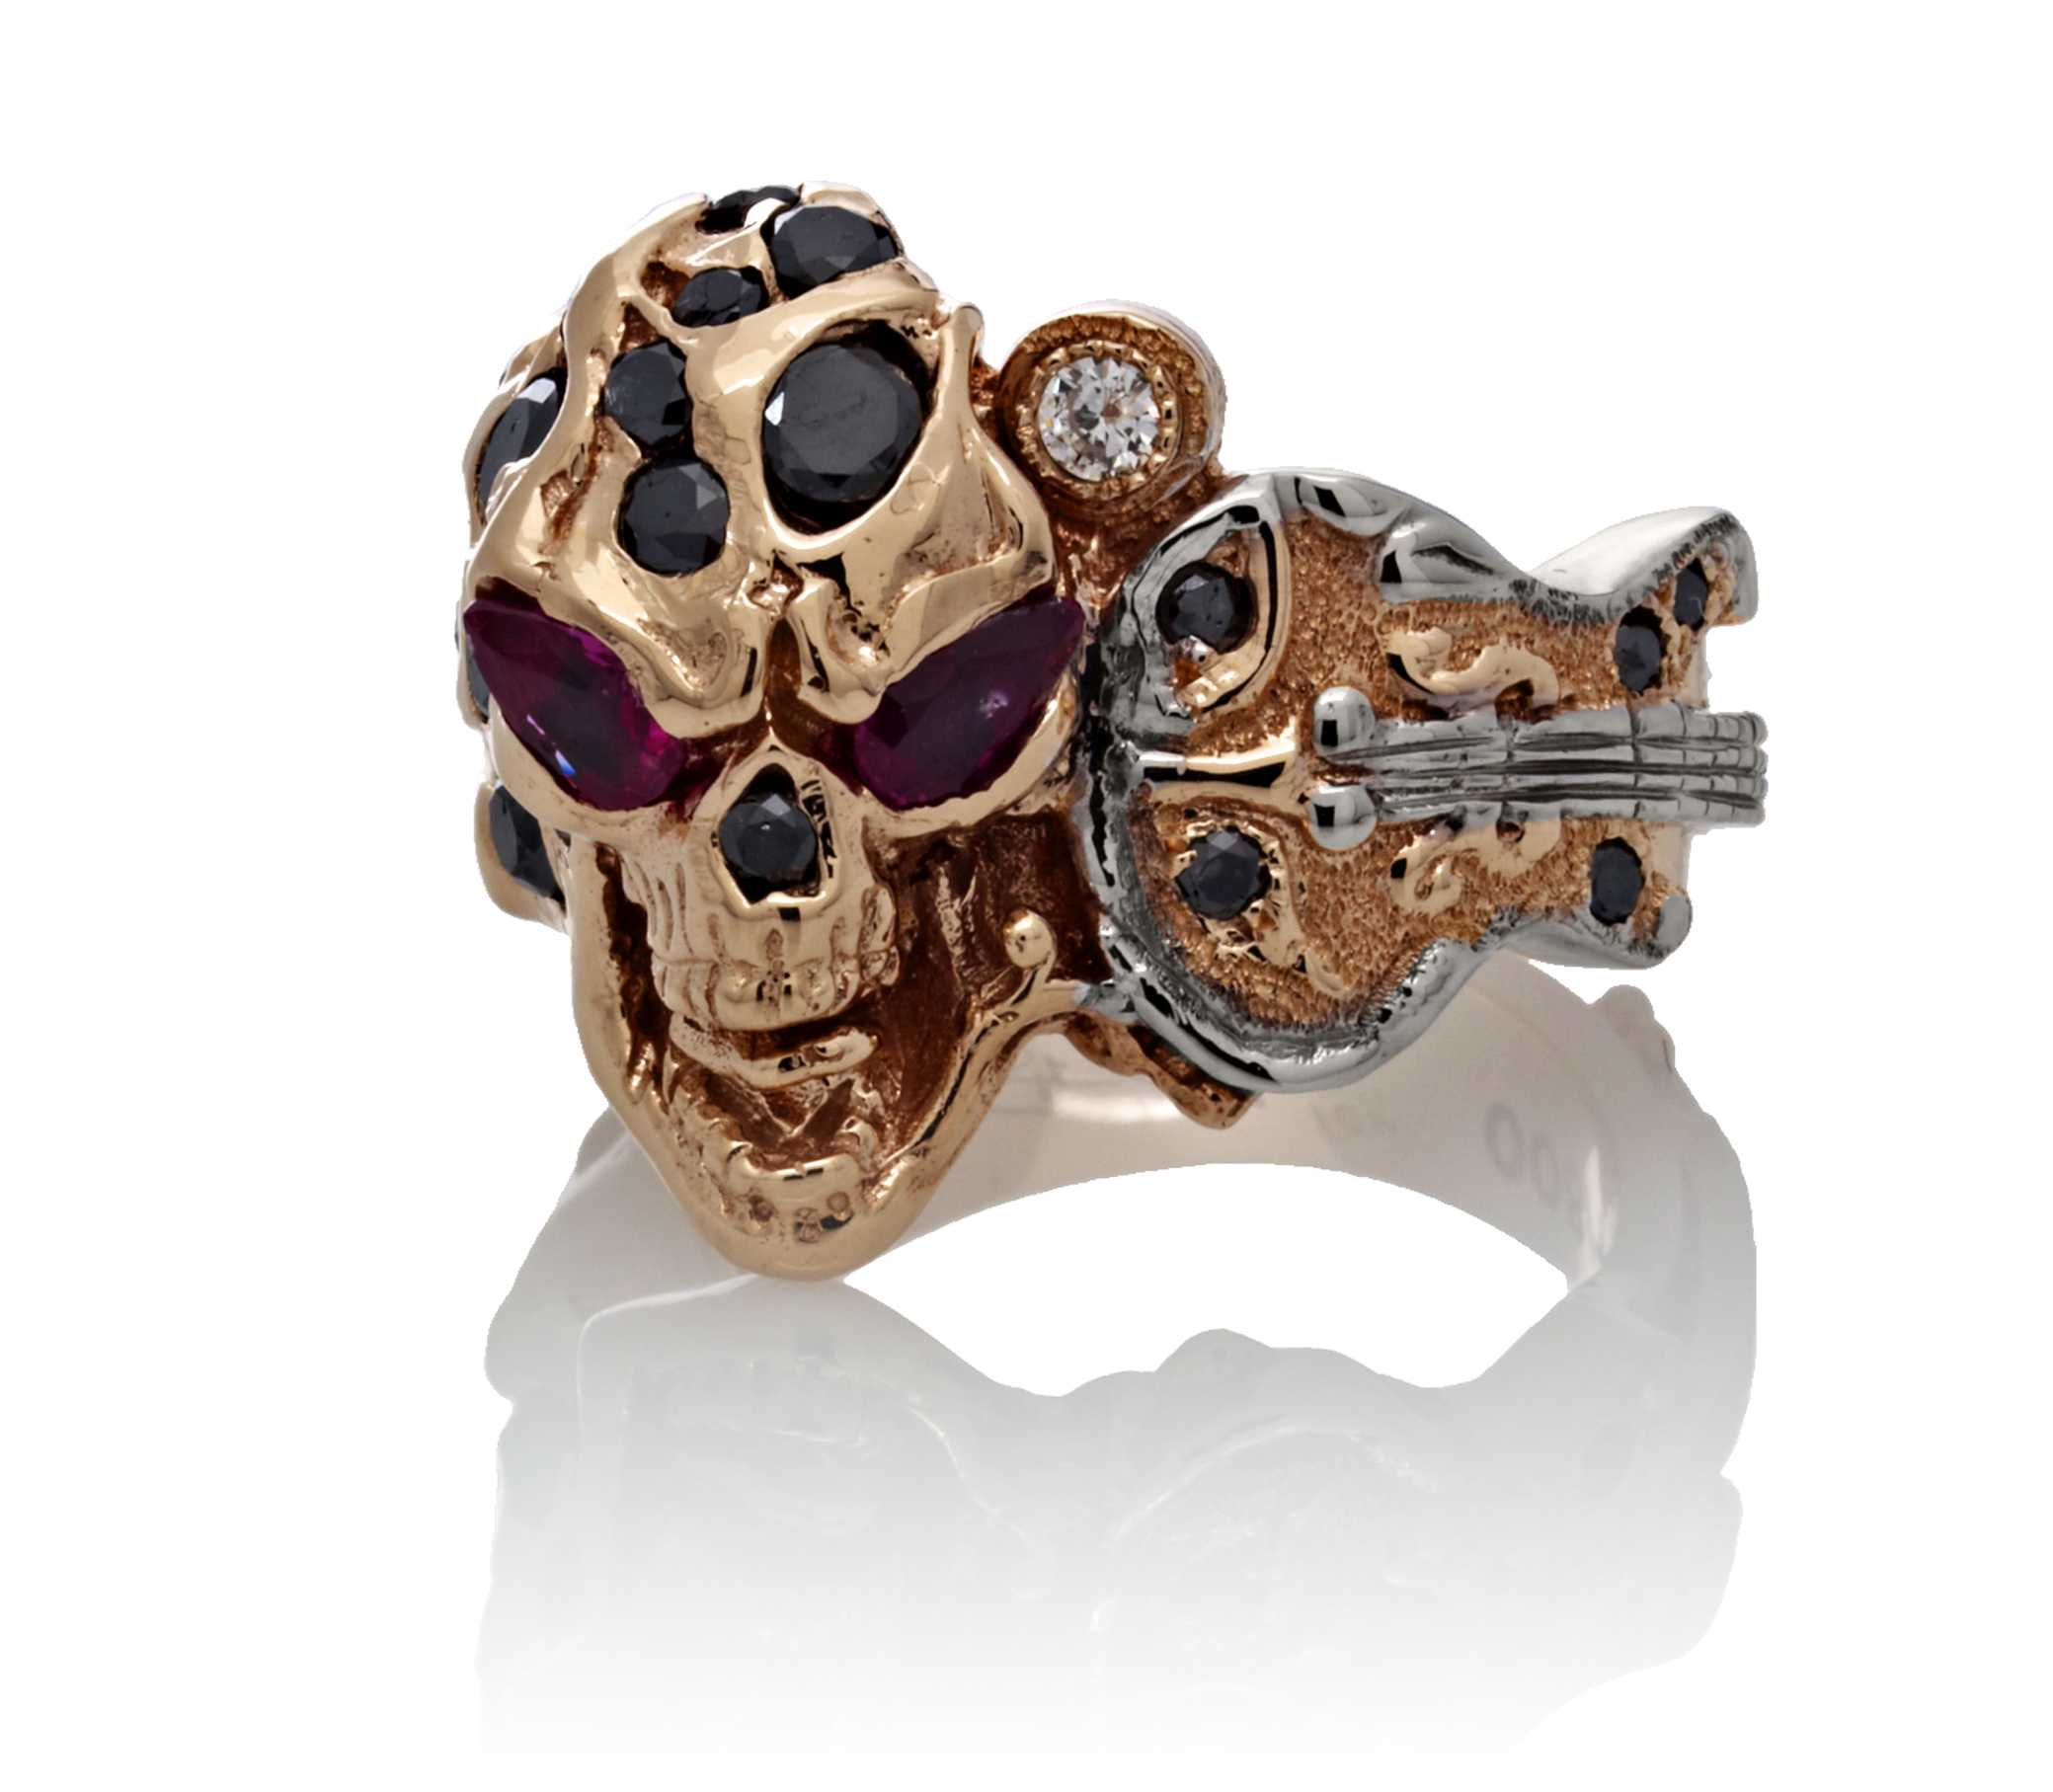 RG1008-A The Rock Star Skull Ring (Front View) in Rose/White Gold, with Black/White Diamonds and Rubies, designed by Steve Soffa